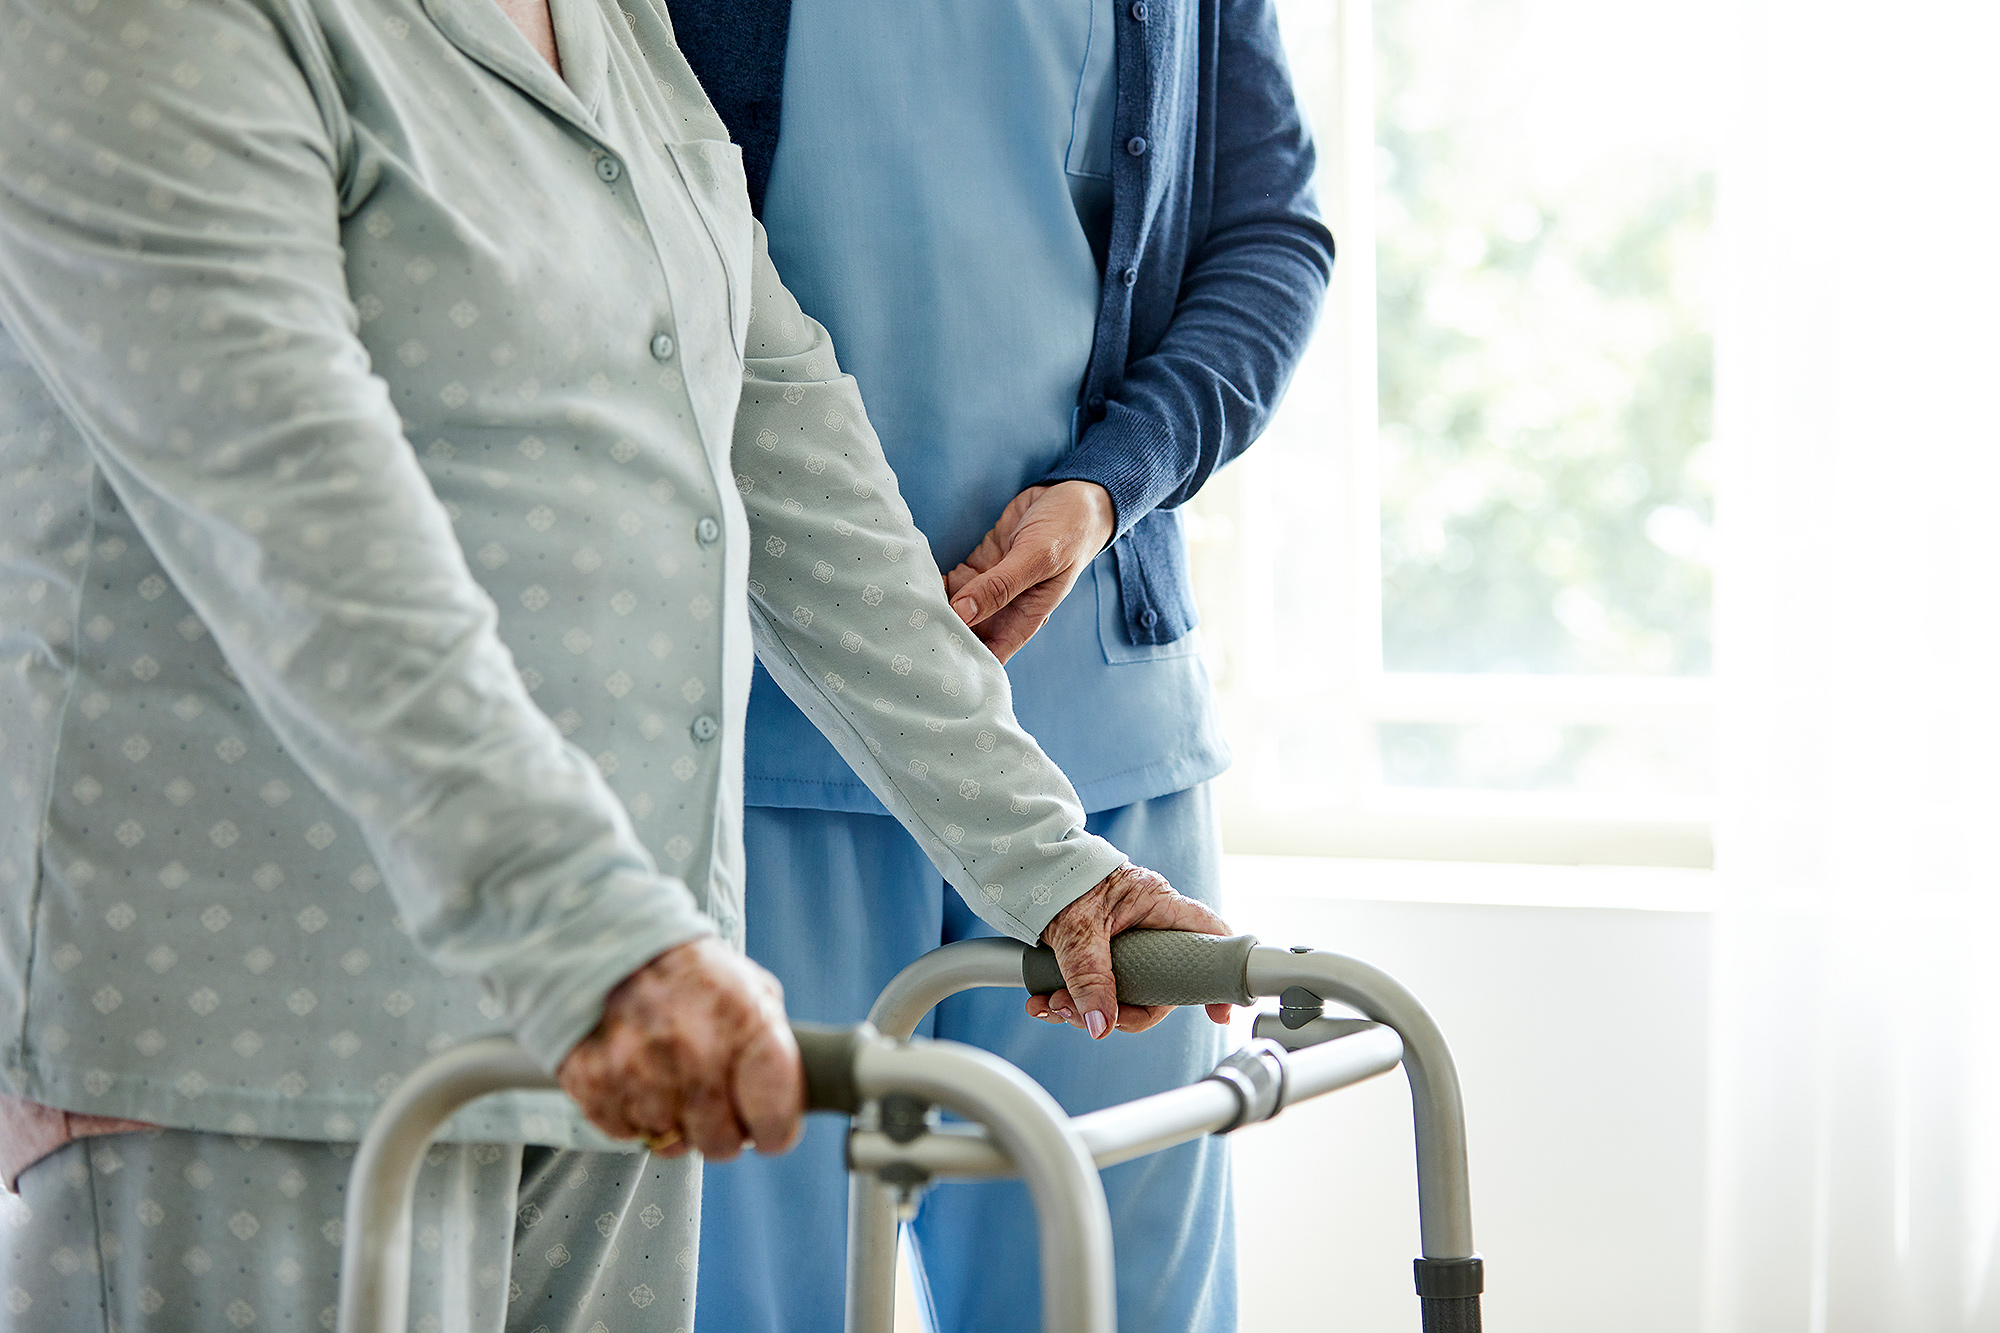 Unvaccinated Nursing Home Worker Set Off a COVID Outbreak Among the Residents